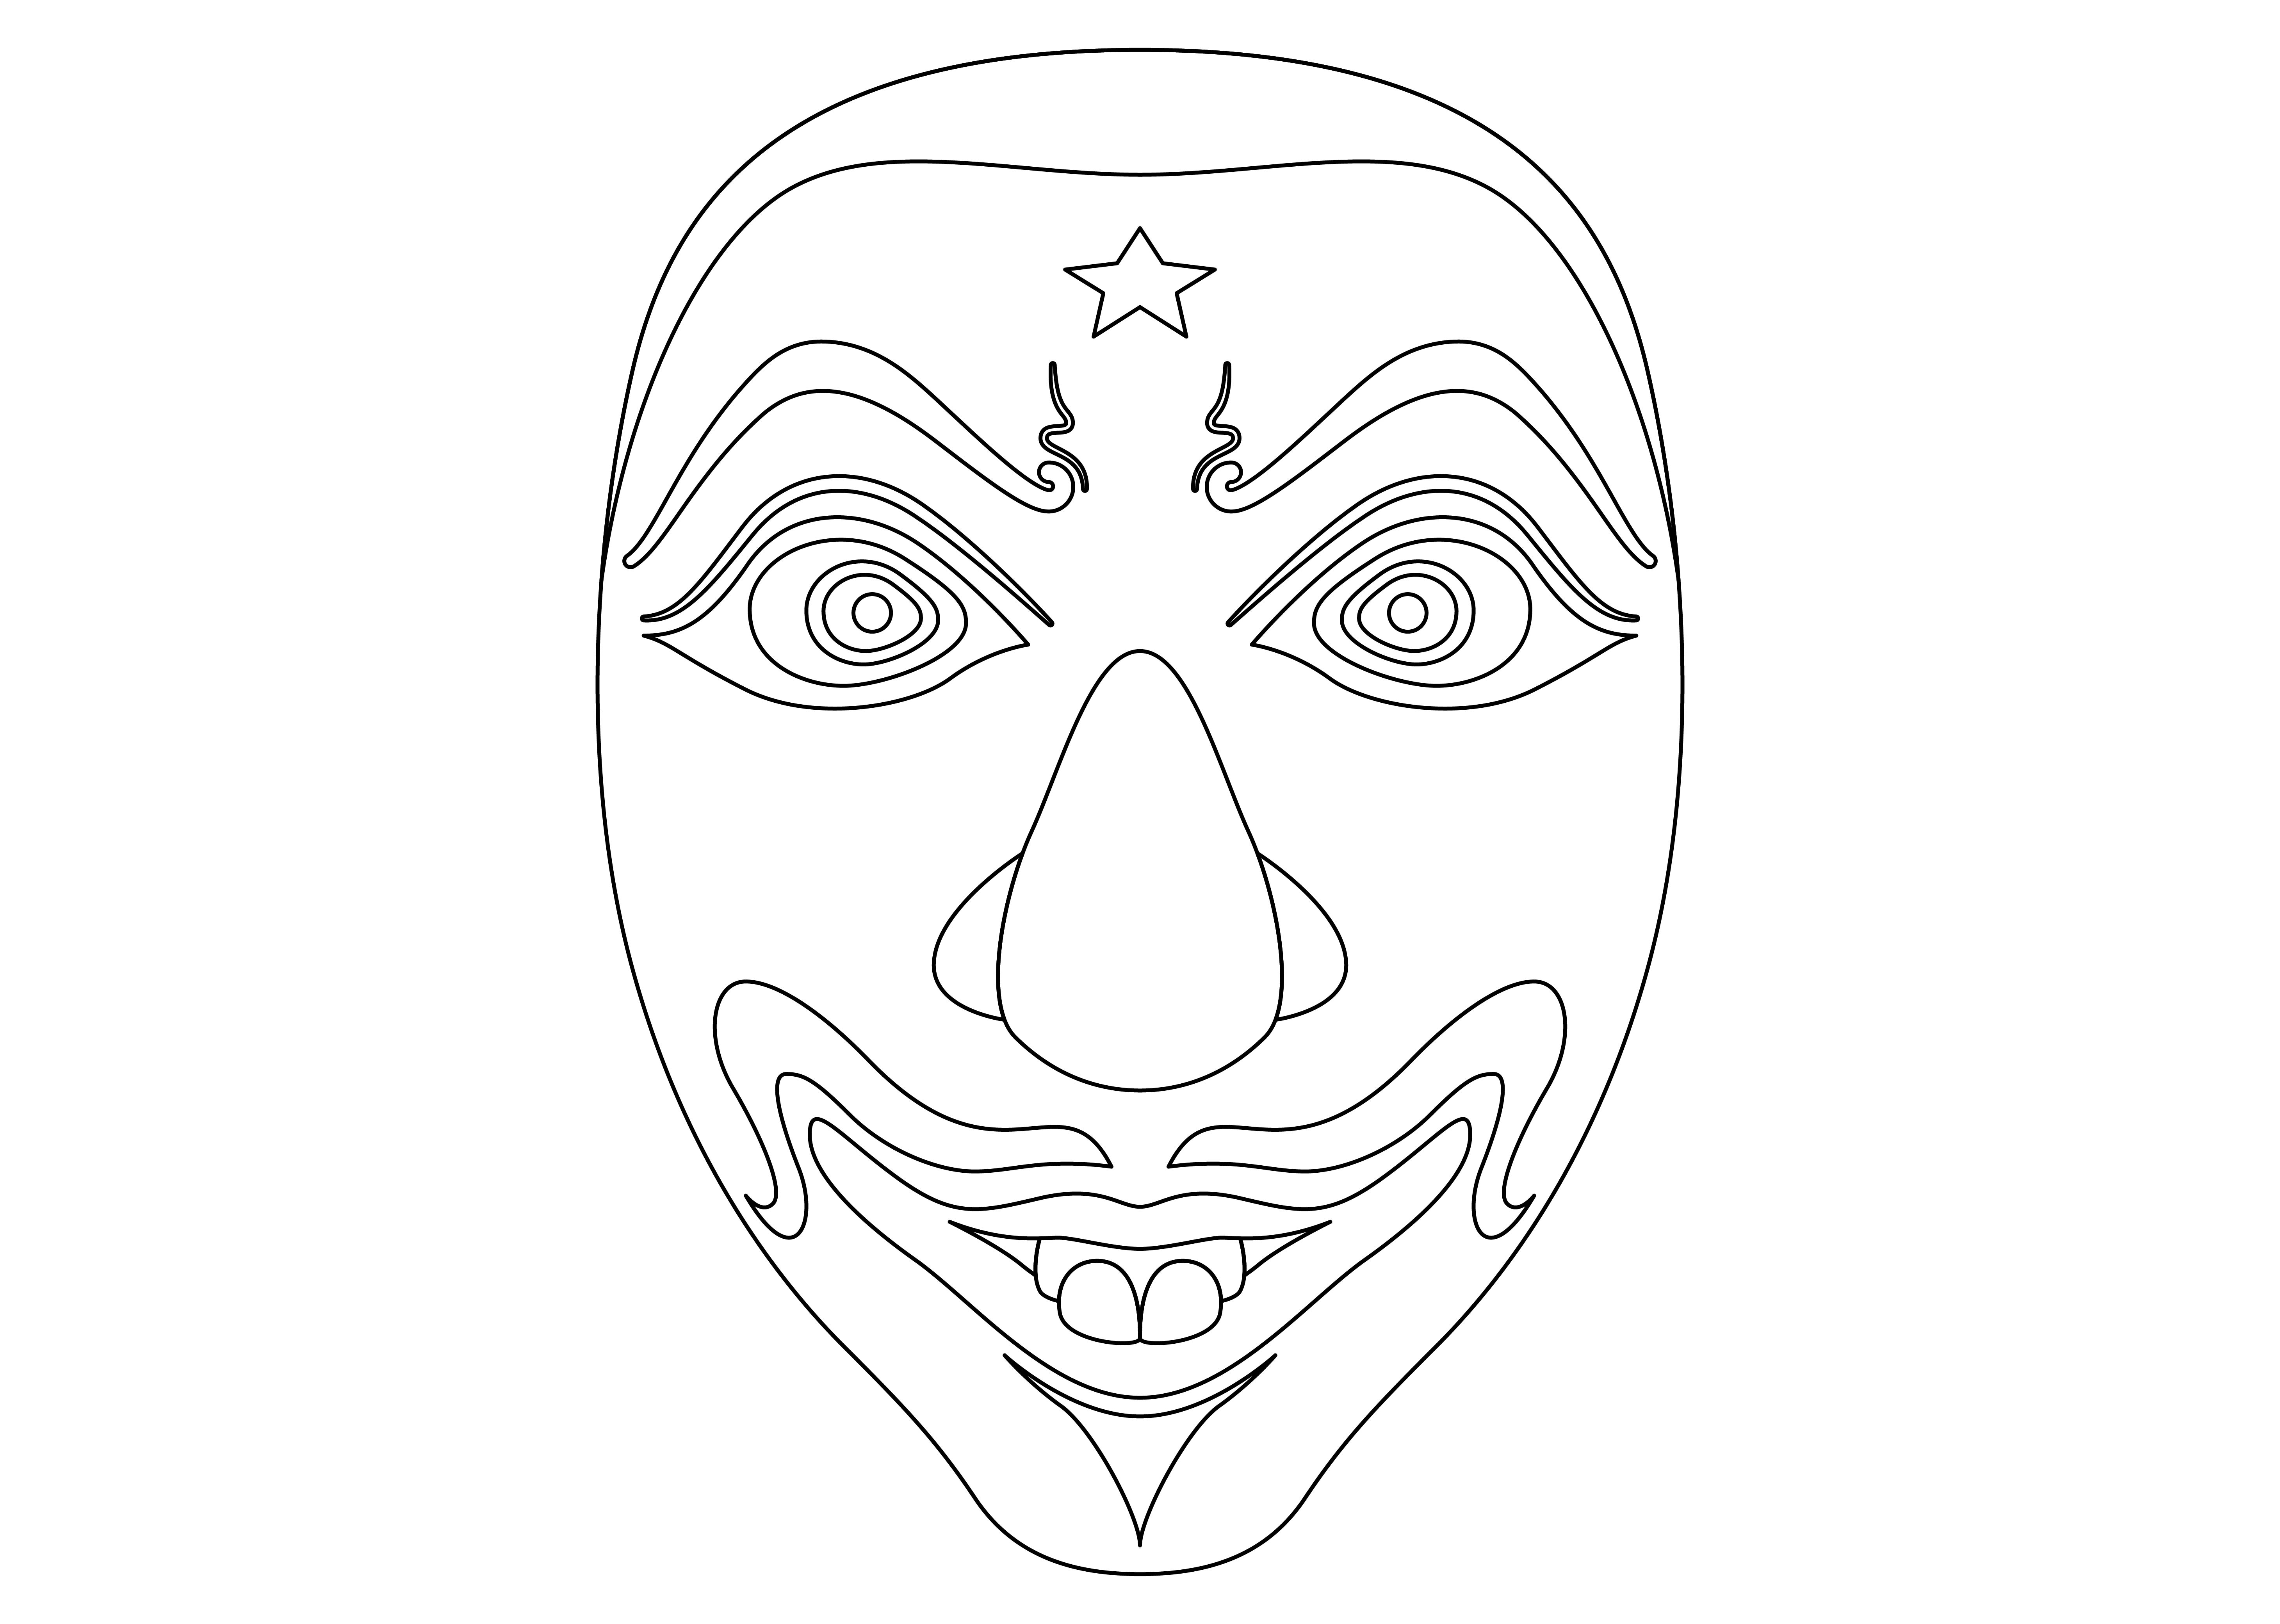 Download Free Ethnic Mask Black 2 Graphic By Studioisamu Creative Fabrica for Cricut Explore, Silhouette and other cutting machines.